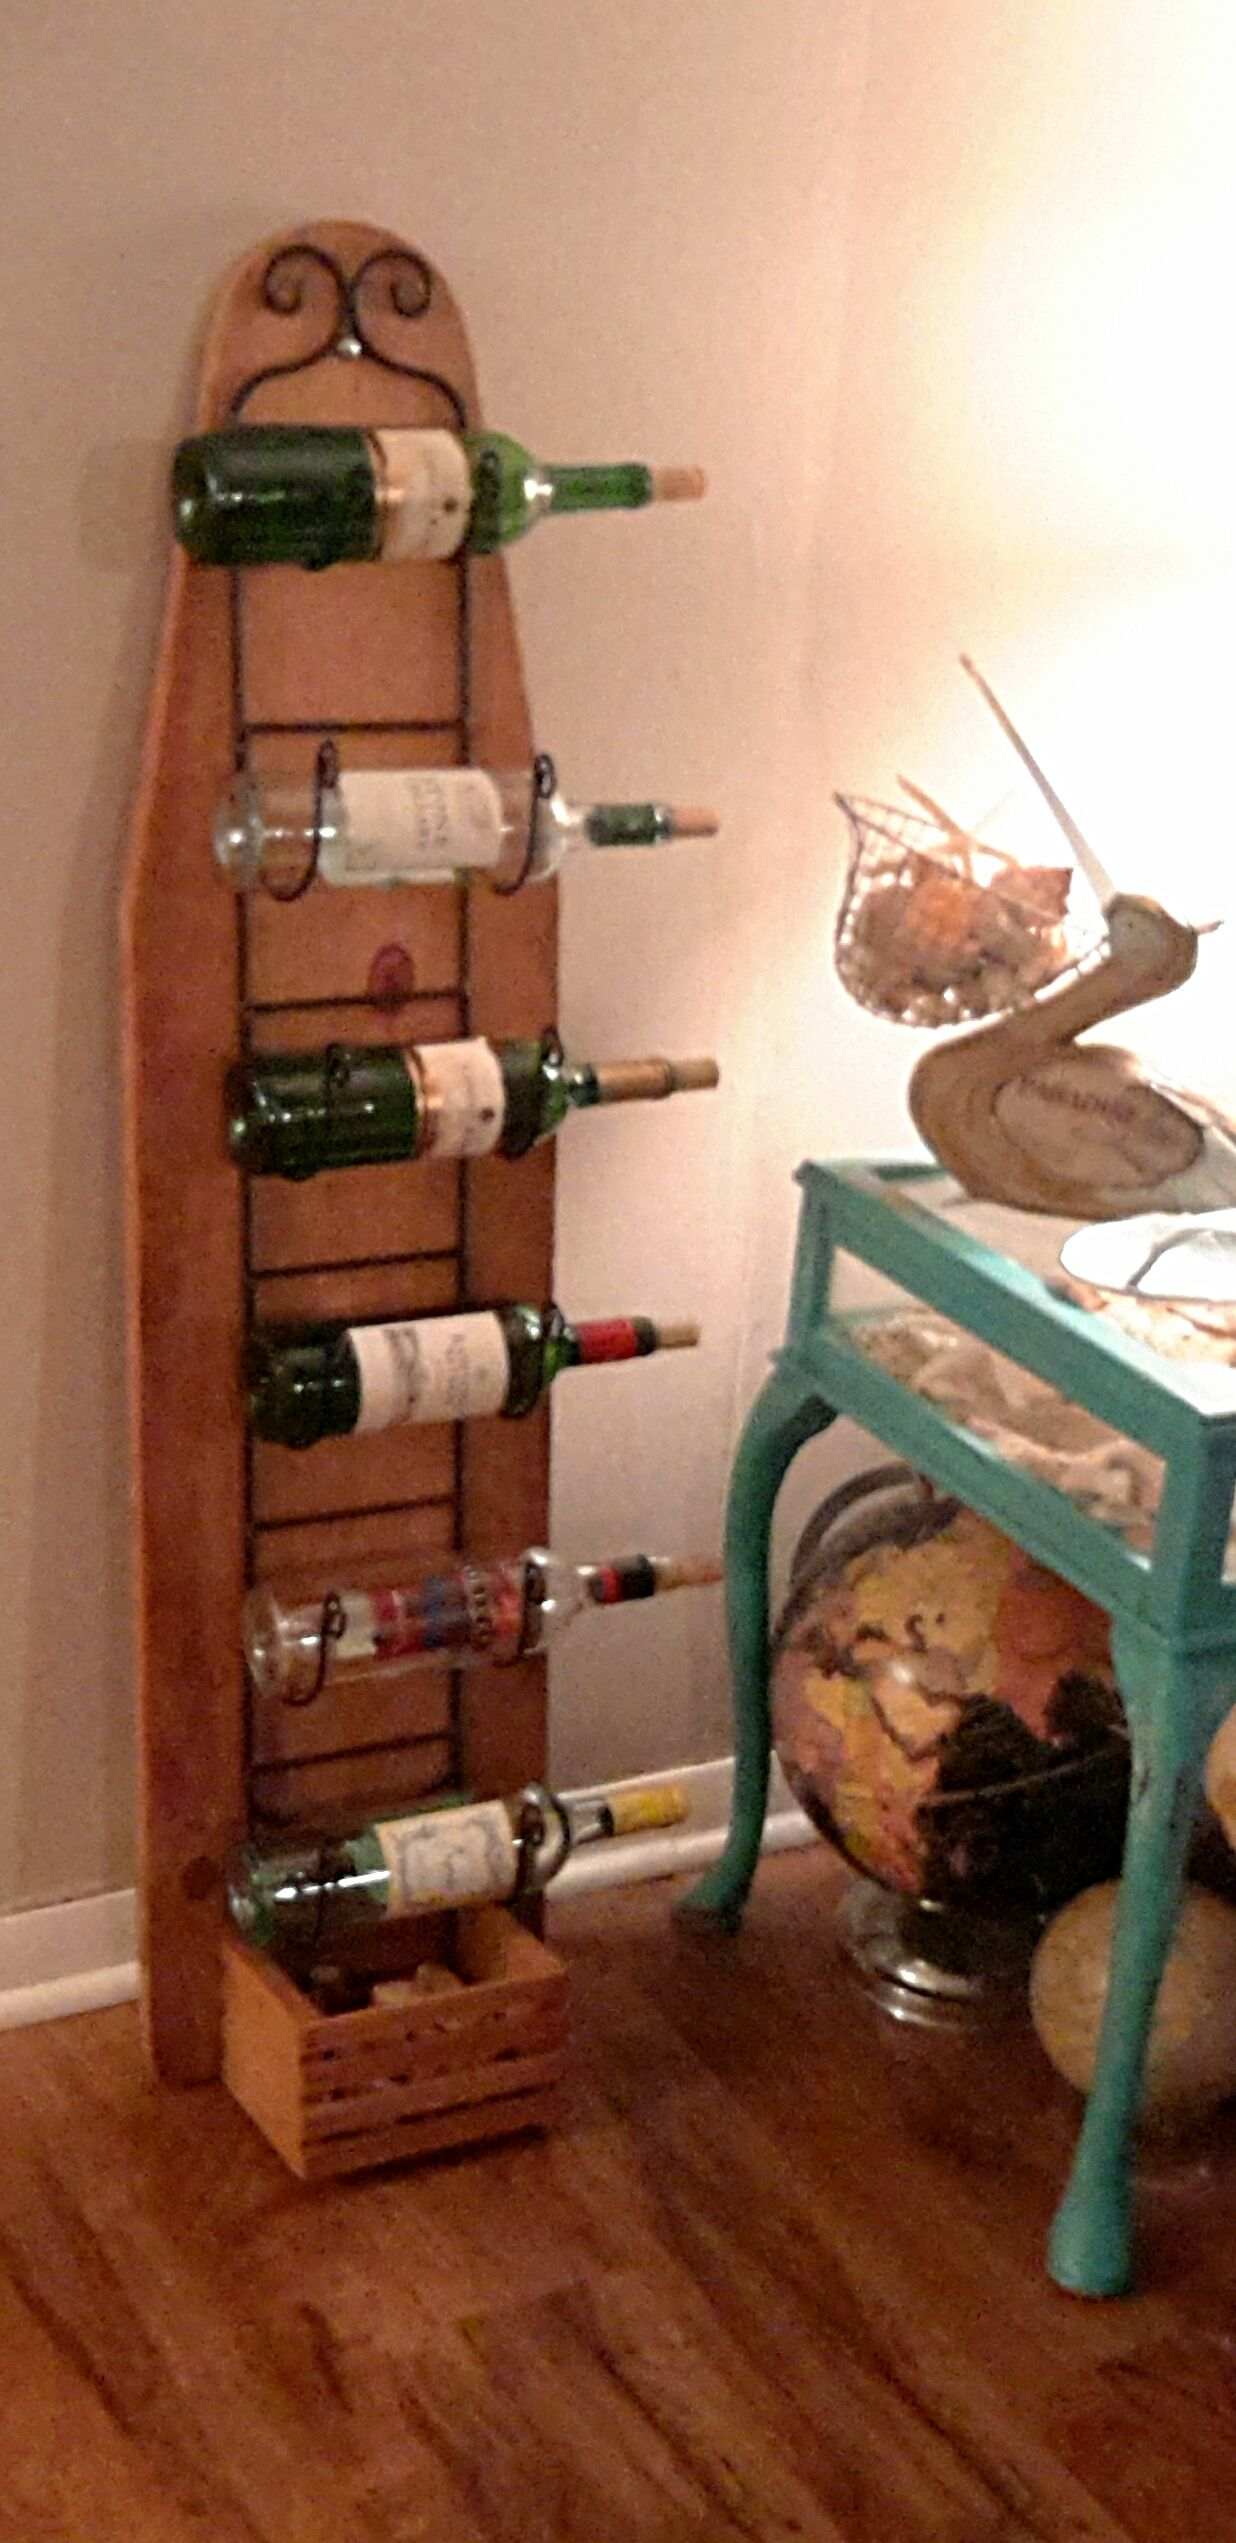 d0b433fa2b2894ad6be9c4ed289dc92b - Is Room And Board Wine Rack Any Good? 15 Ways You Can Be Certain